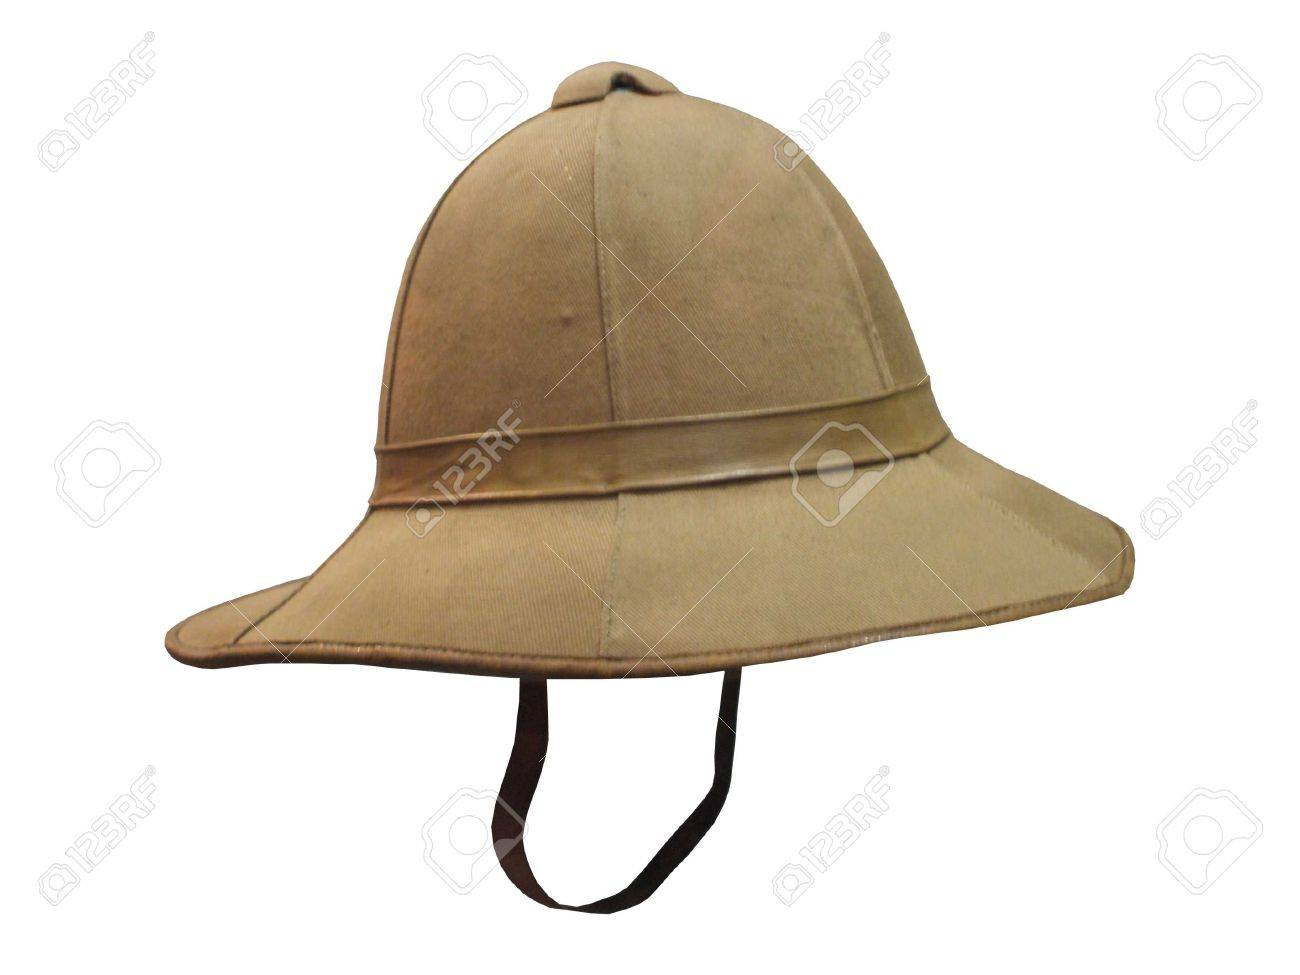 535f59c933cdf A Typical Traditional Army Colonial Pith Helmet. Stock Photo - 9501614